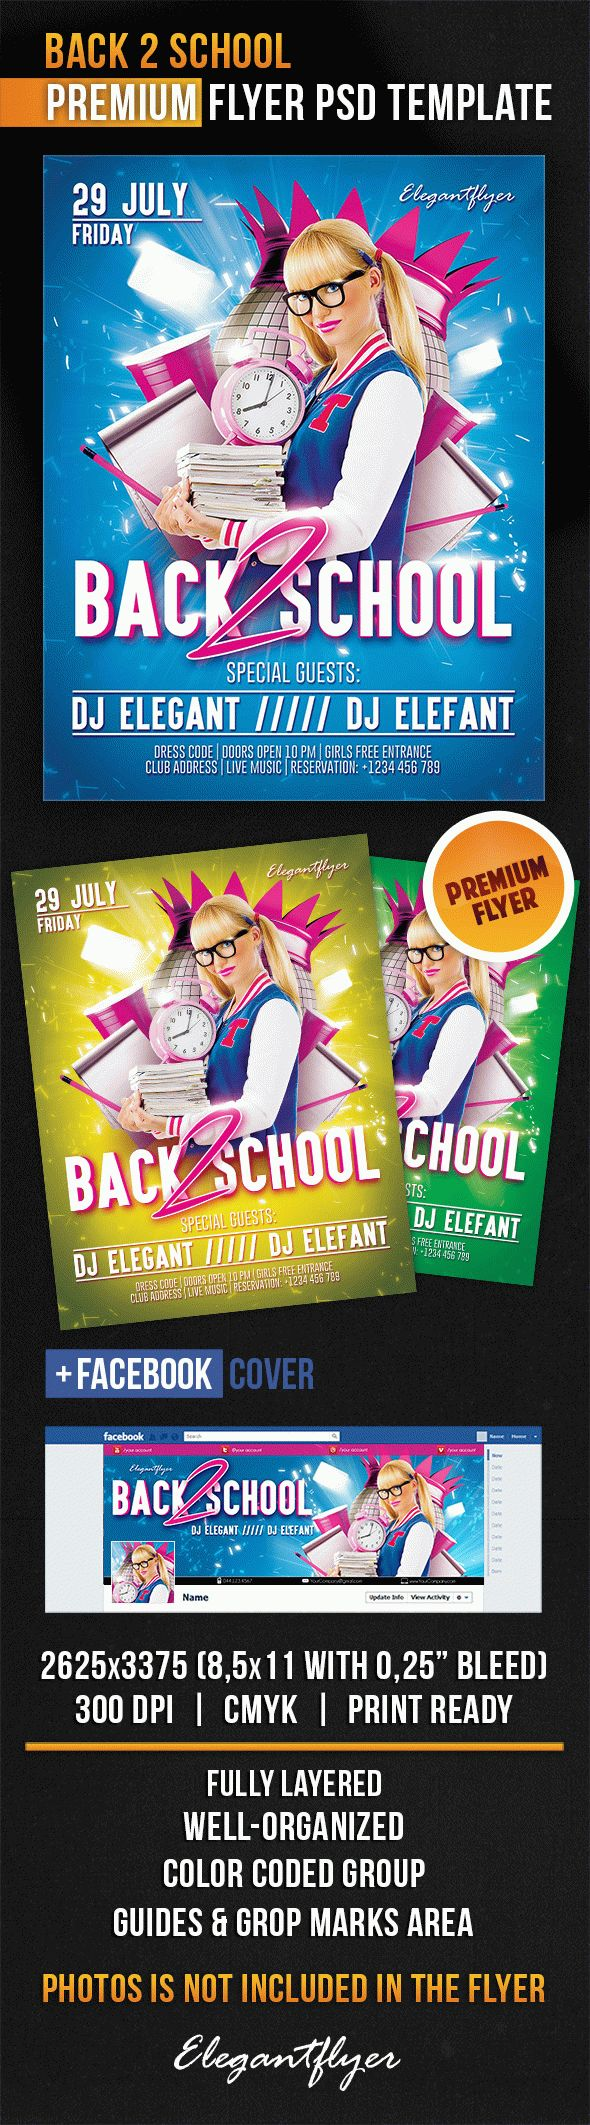 Back 2 School – Flyer PSD Template + Facebook Cover